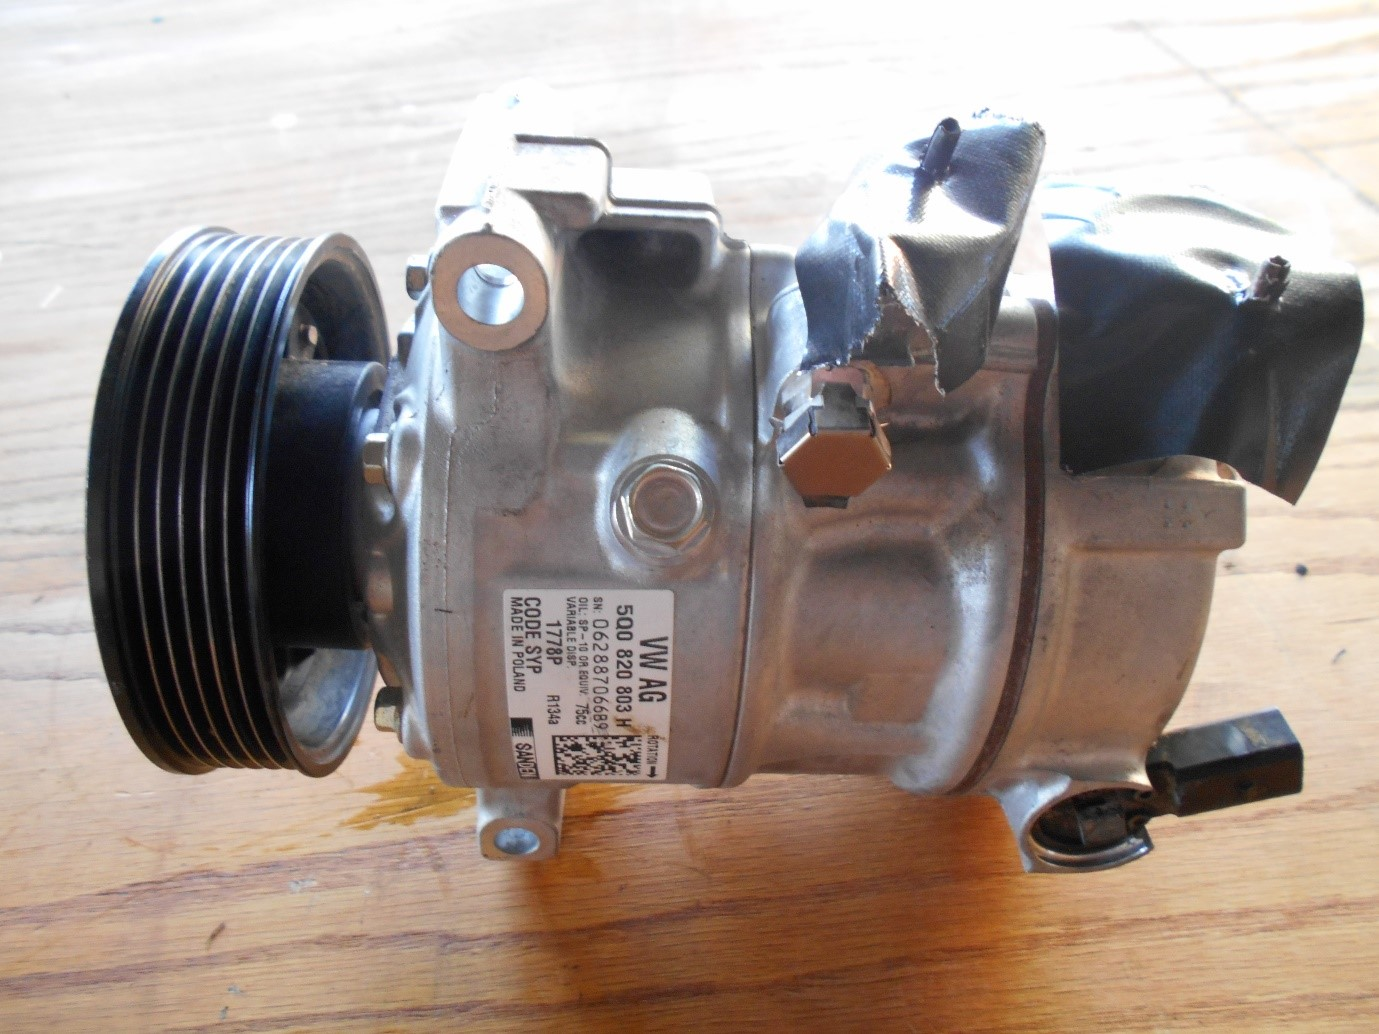 Volkswagen VW Polo 4 Air Conditioning Compressor / Pump For Sale